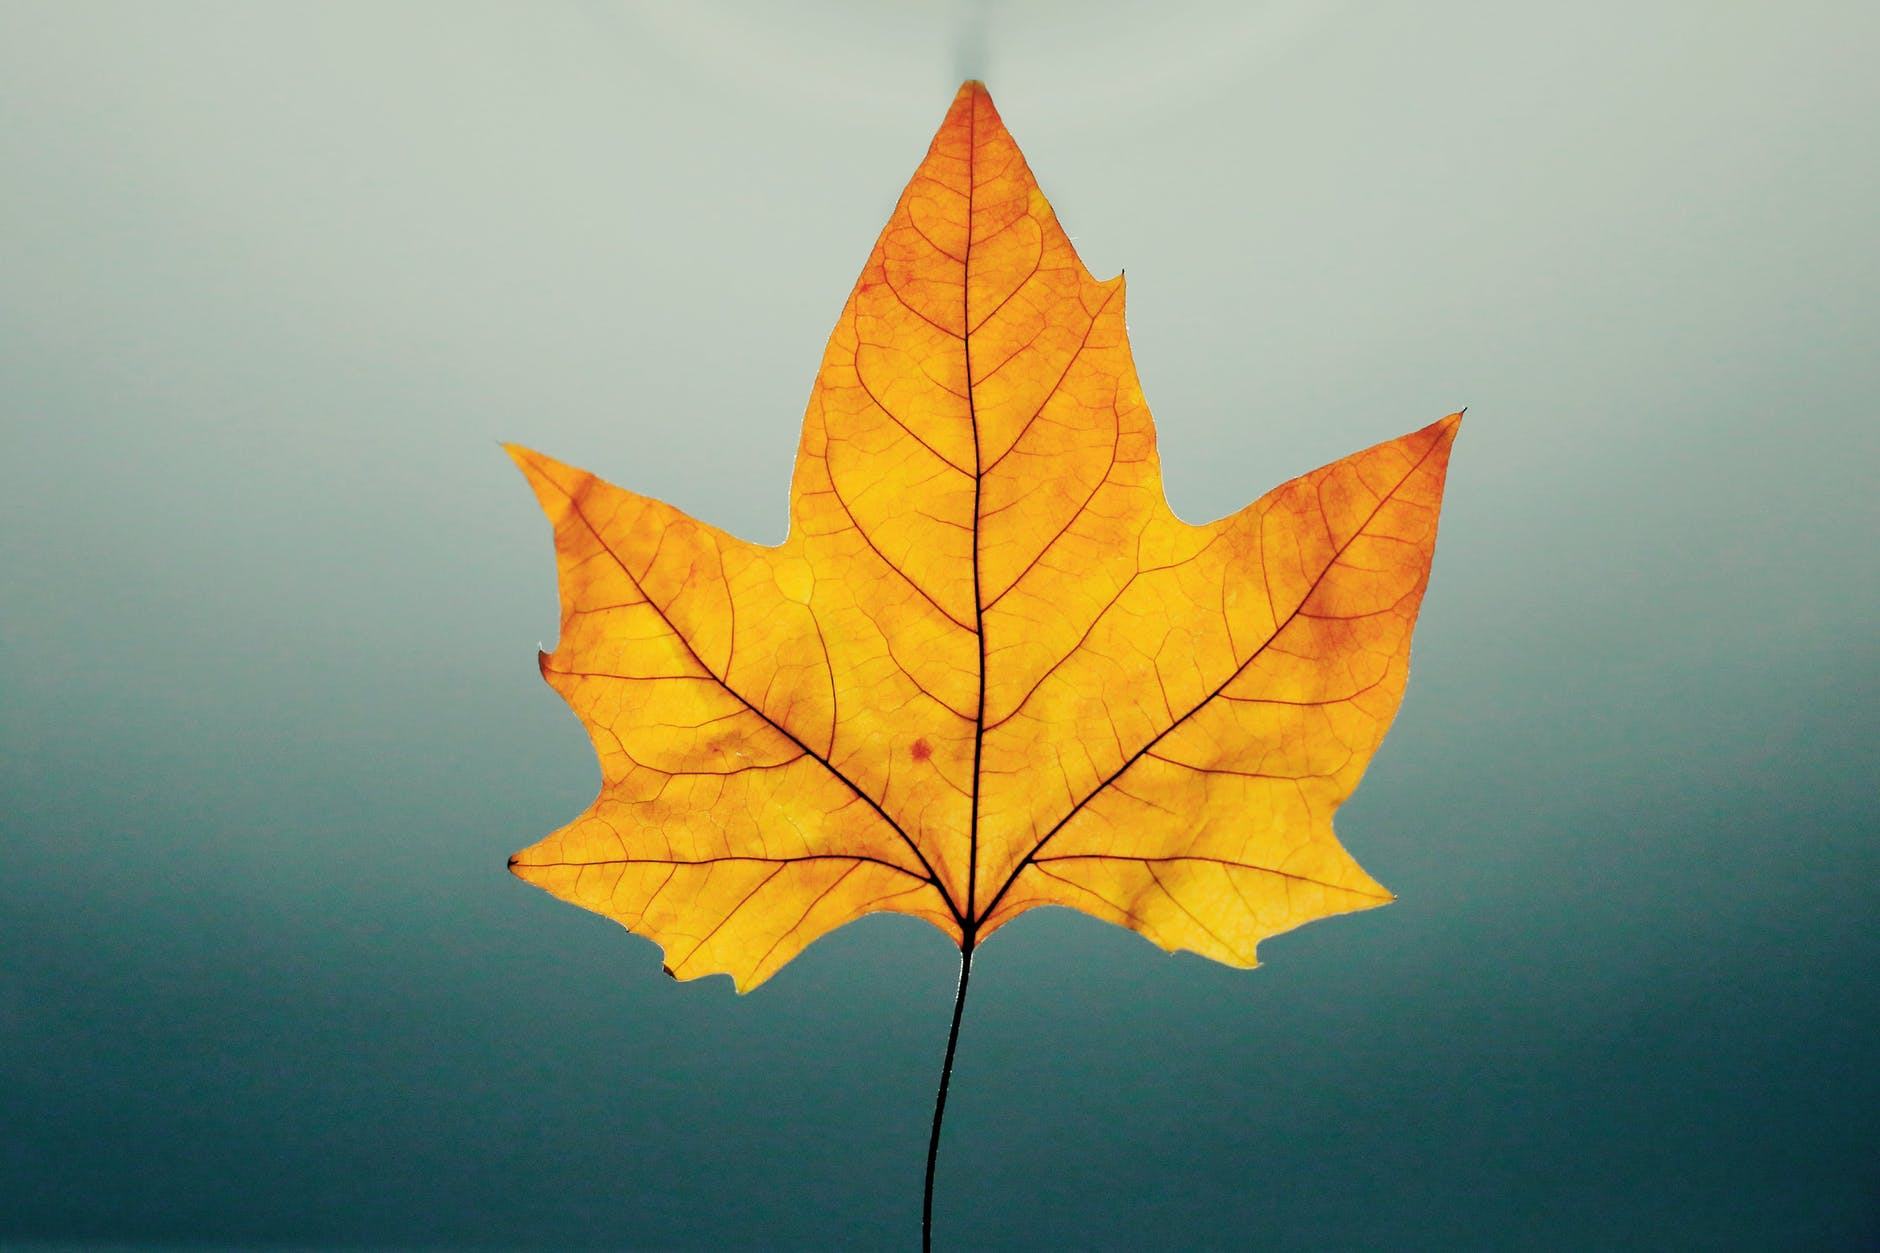 Yellow leaf on green-gray background.